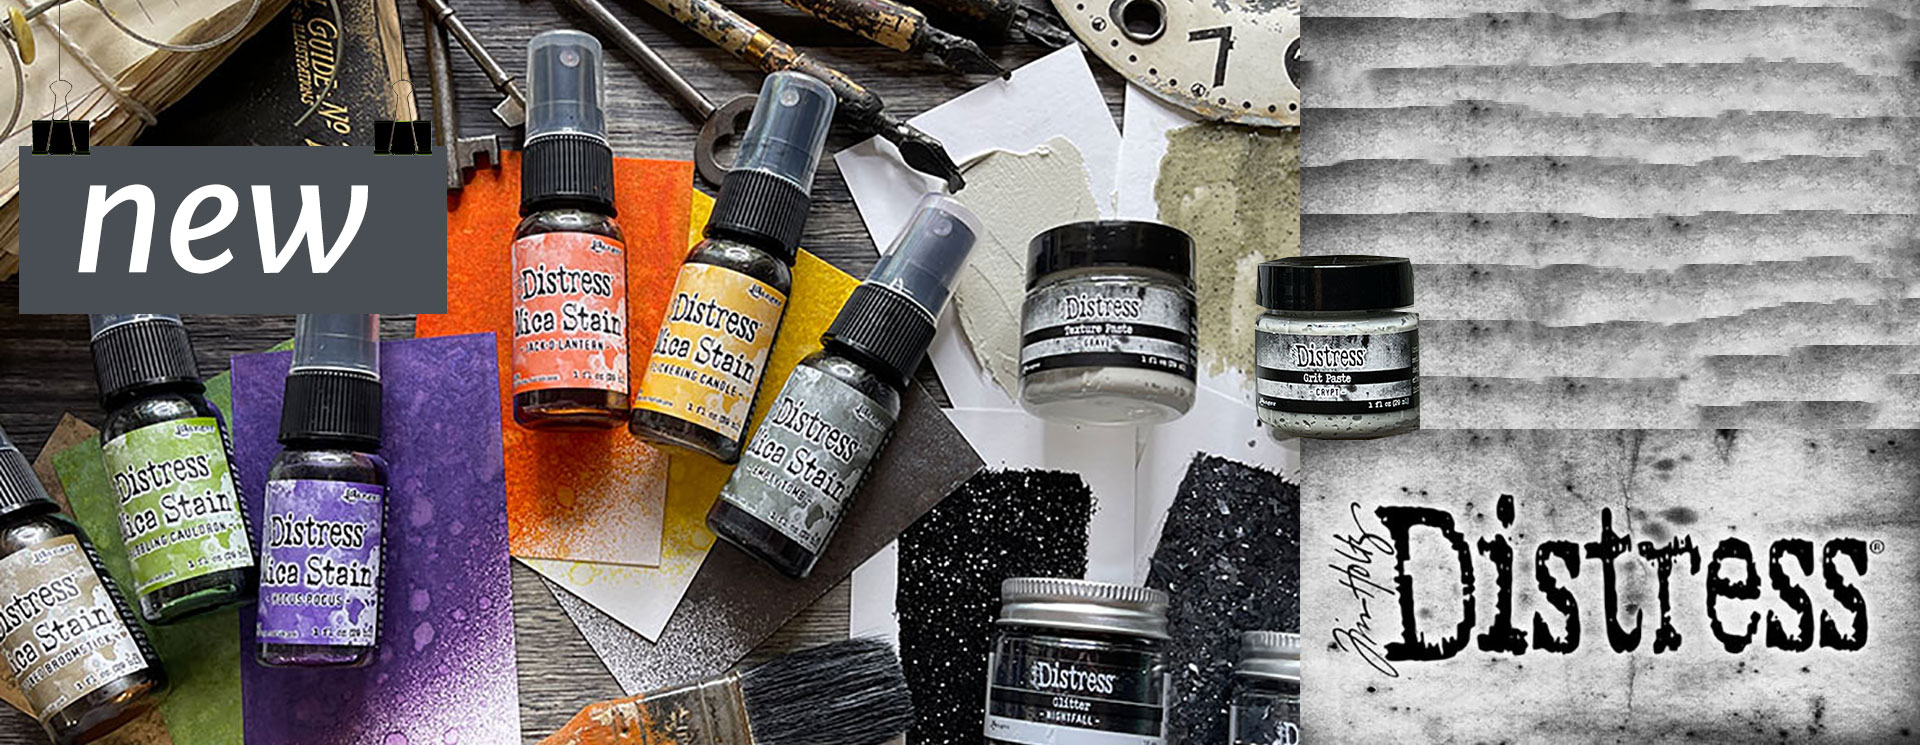 Tim Holtz Limited Edition Halloween Products